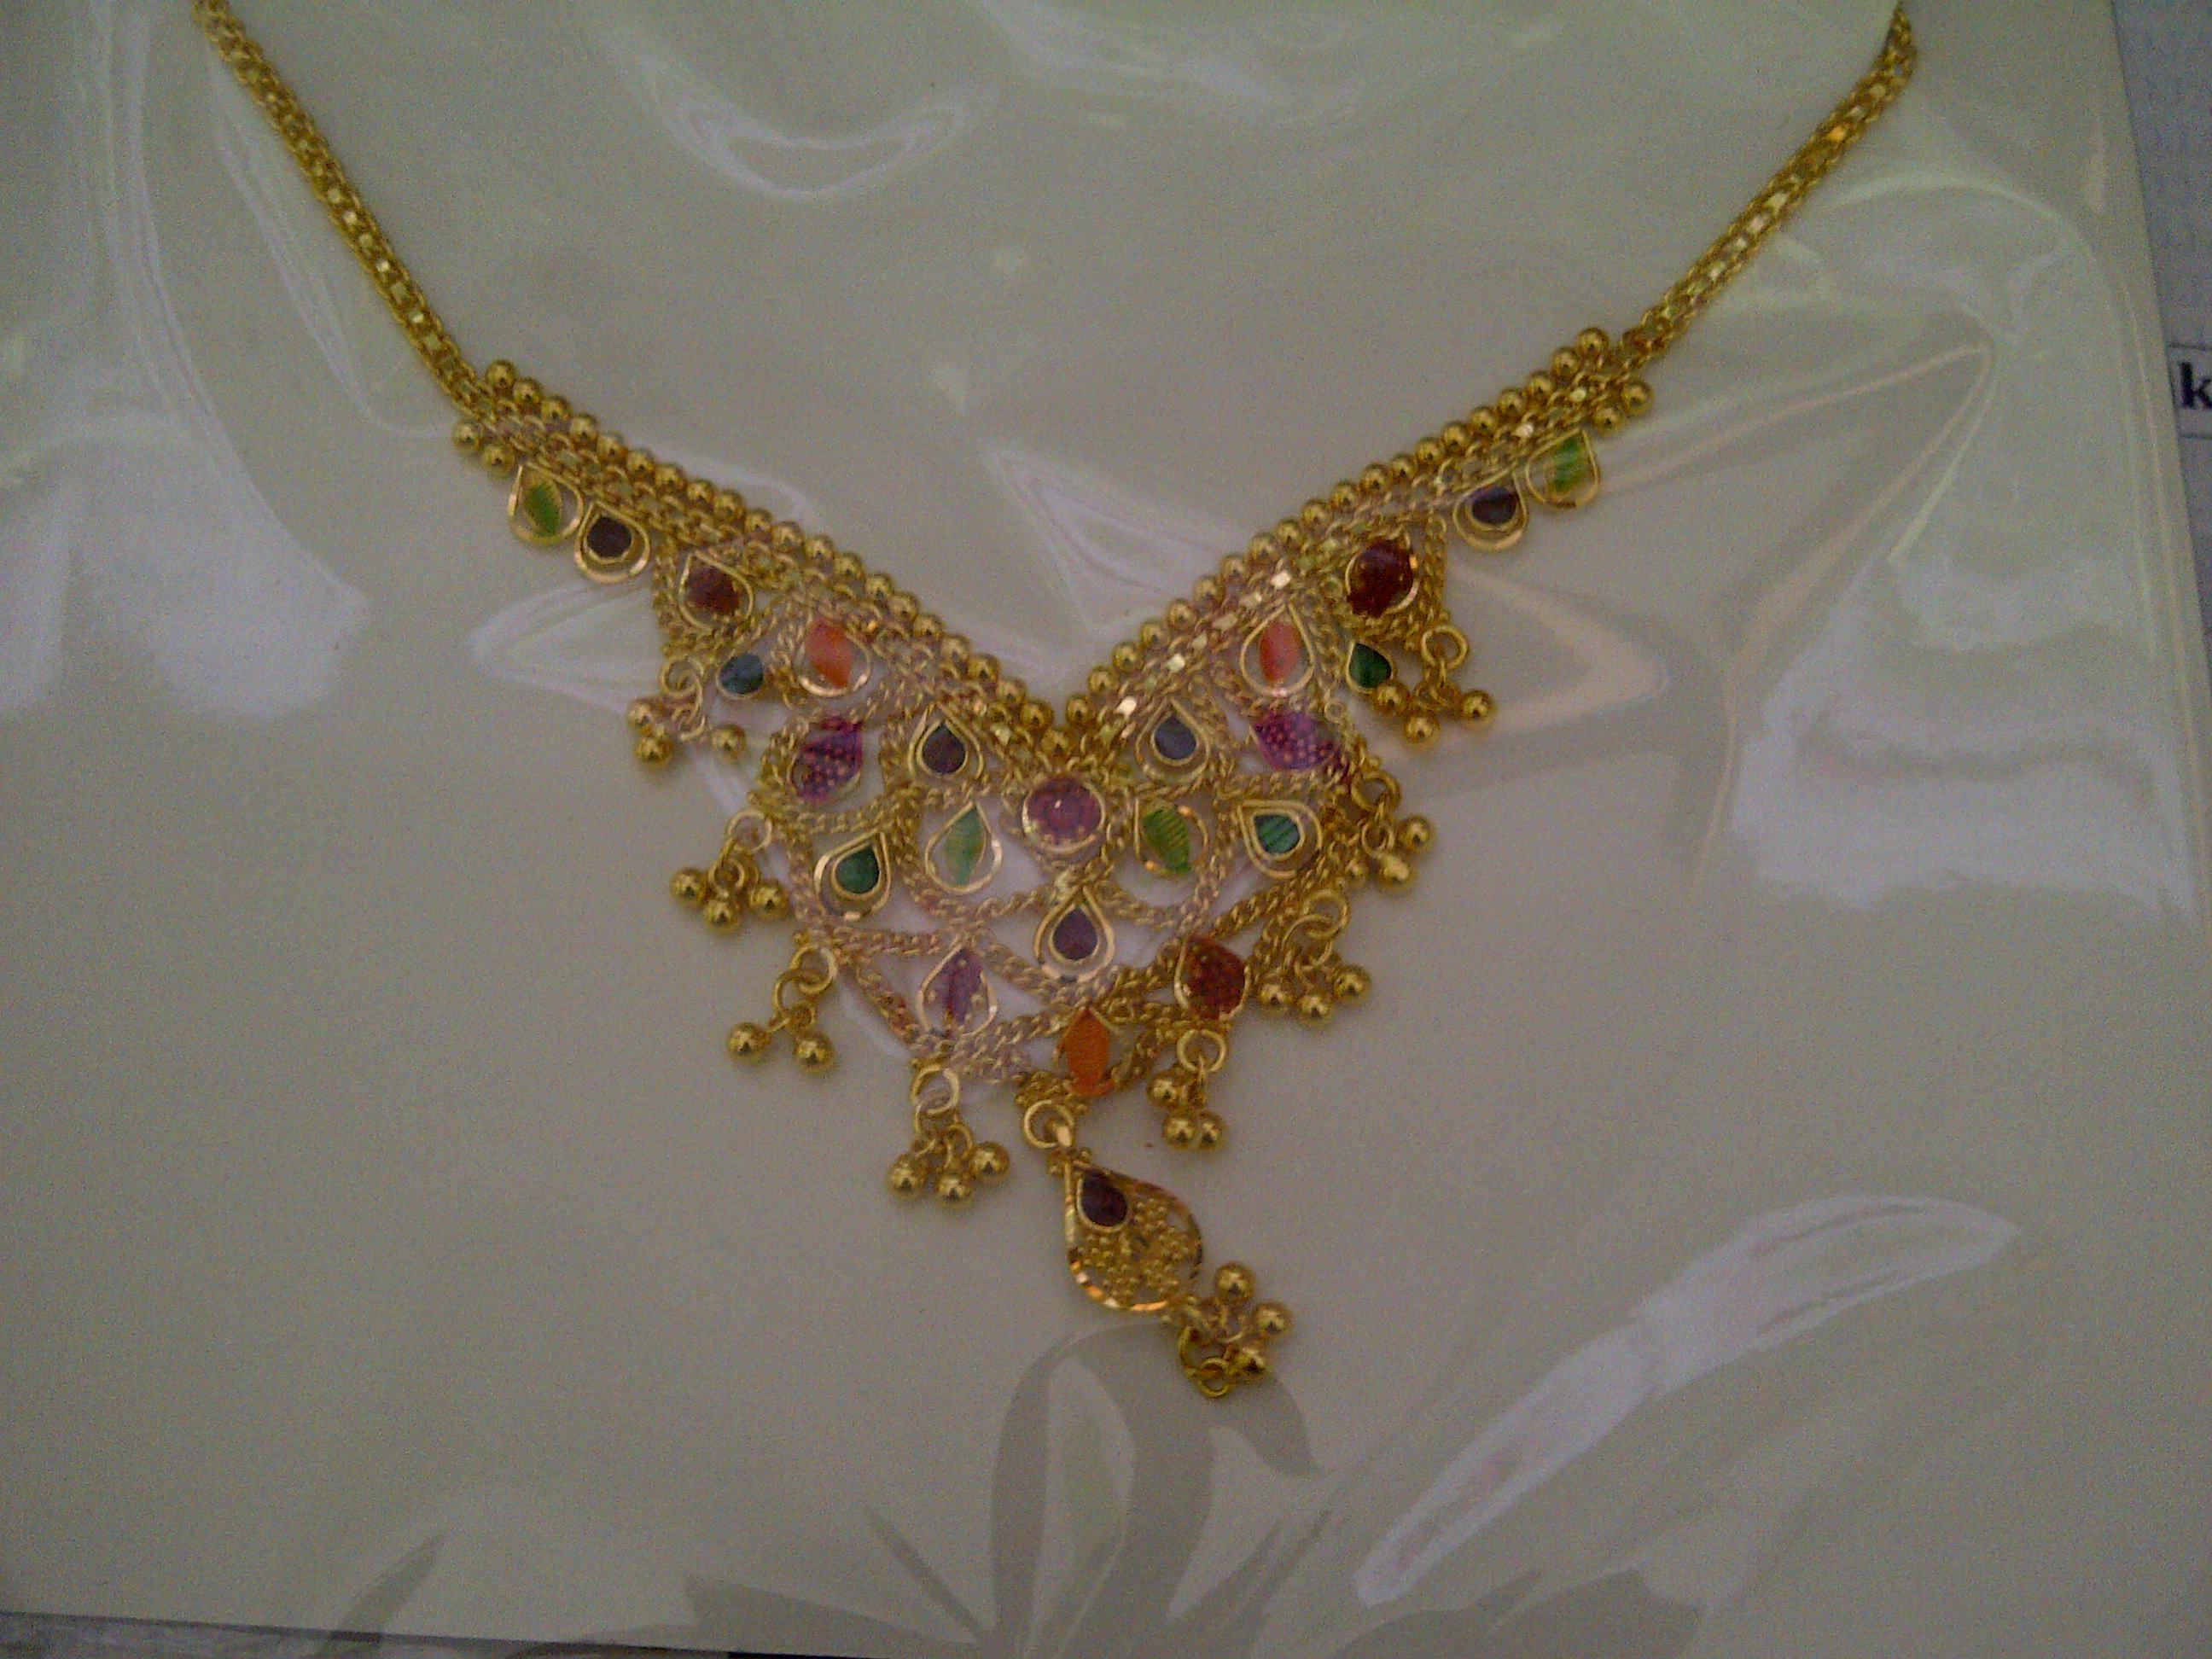 necklace kong flower hong pin gold pendant jewelry